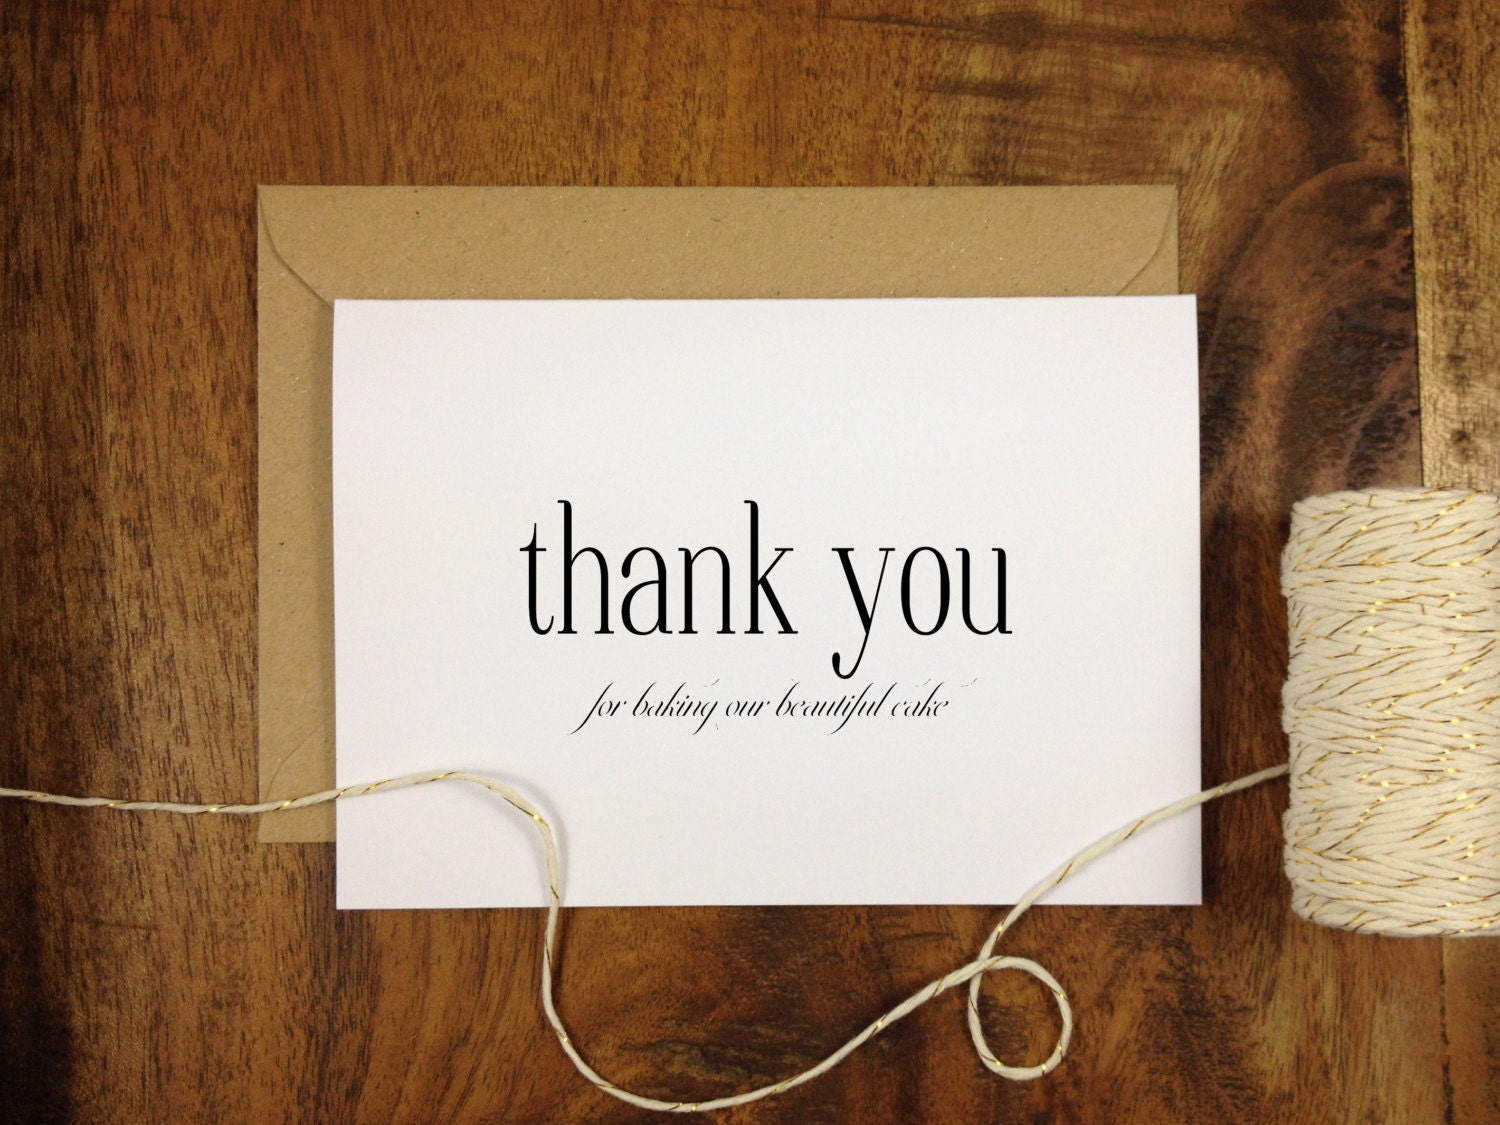 Thank You For Baking: Thank You For Baking Wedding Cake Baker Card Card By